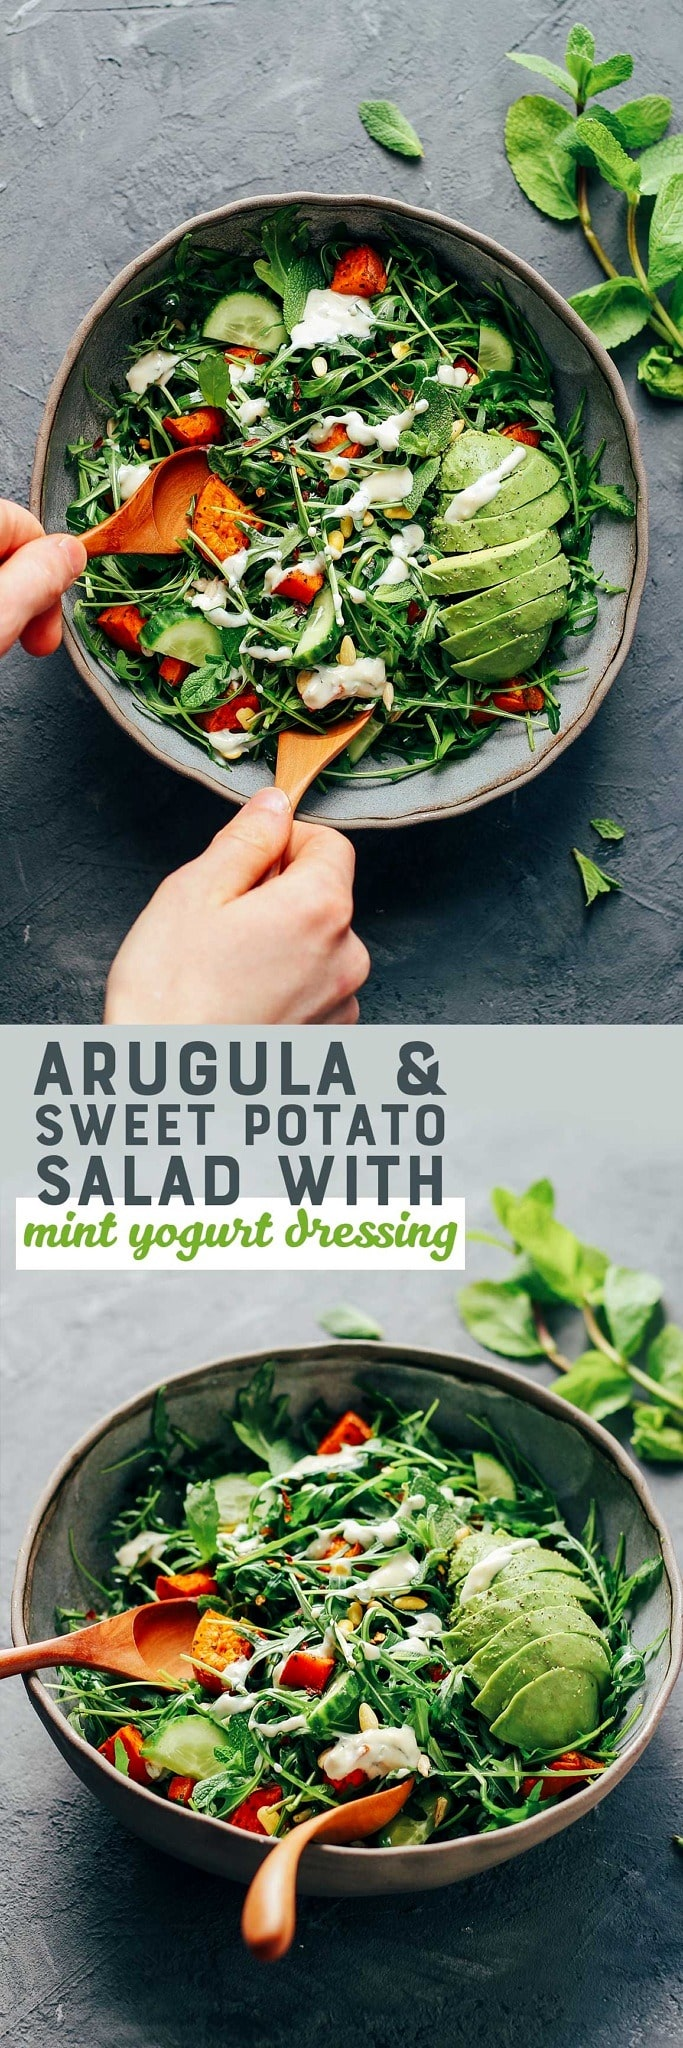 Arugula & Sweet Potato Salad